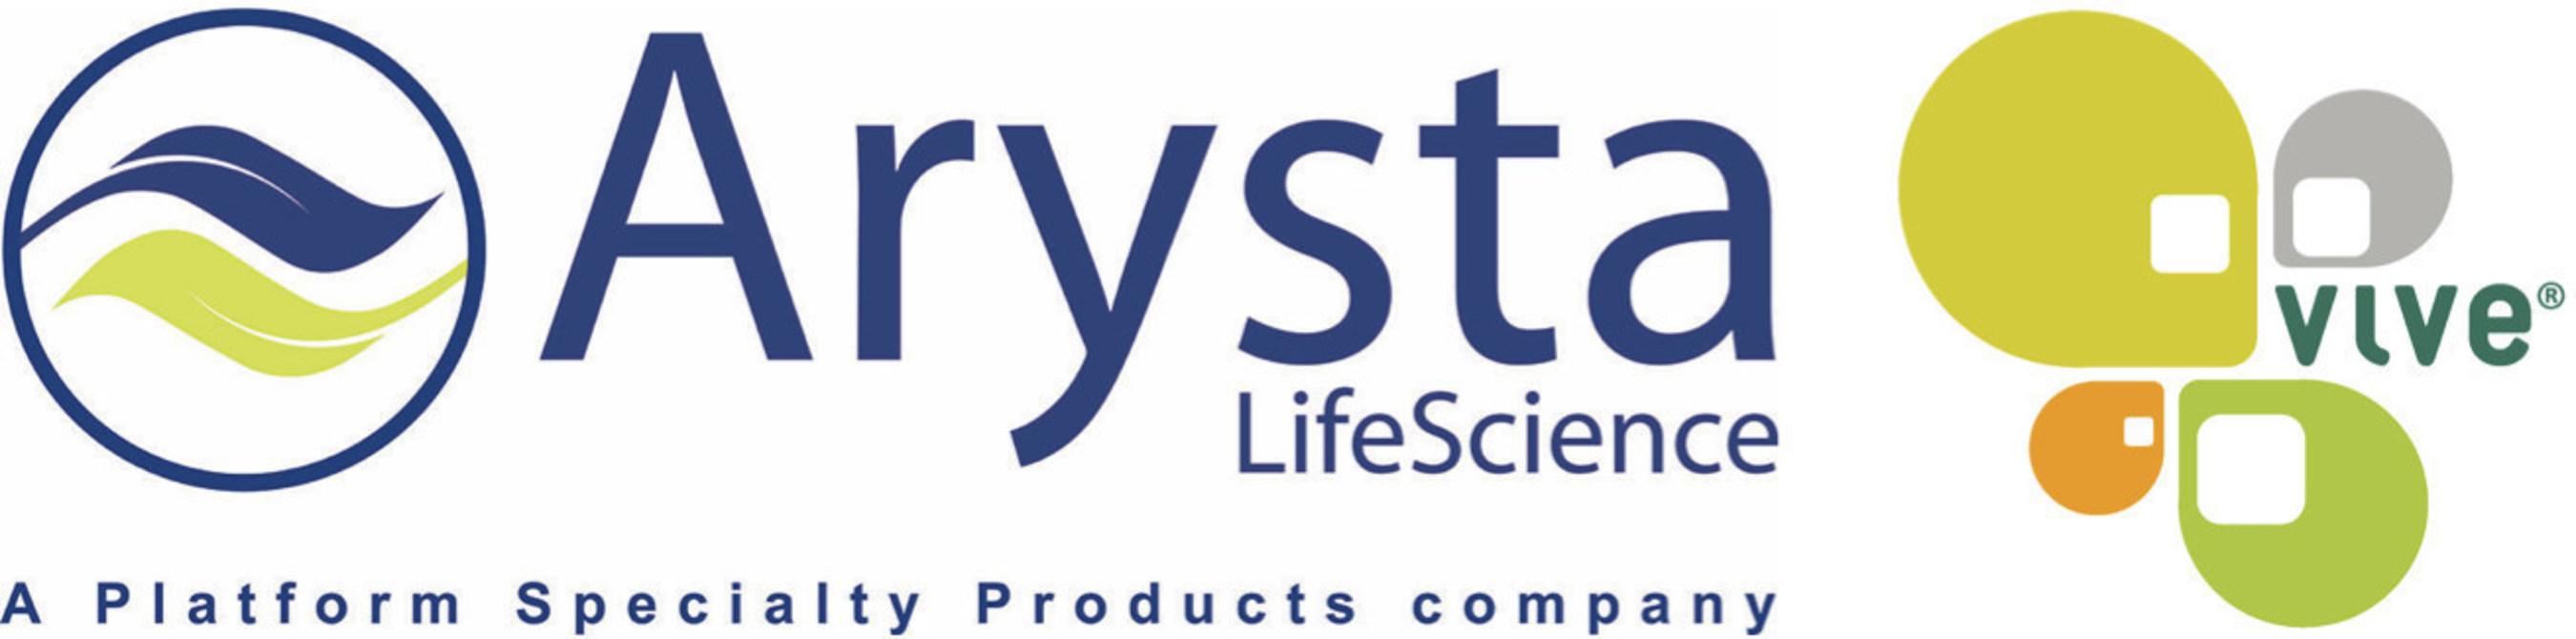 Vive Crop Protection and Arysta LifeScience Announce Partnership